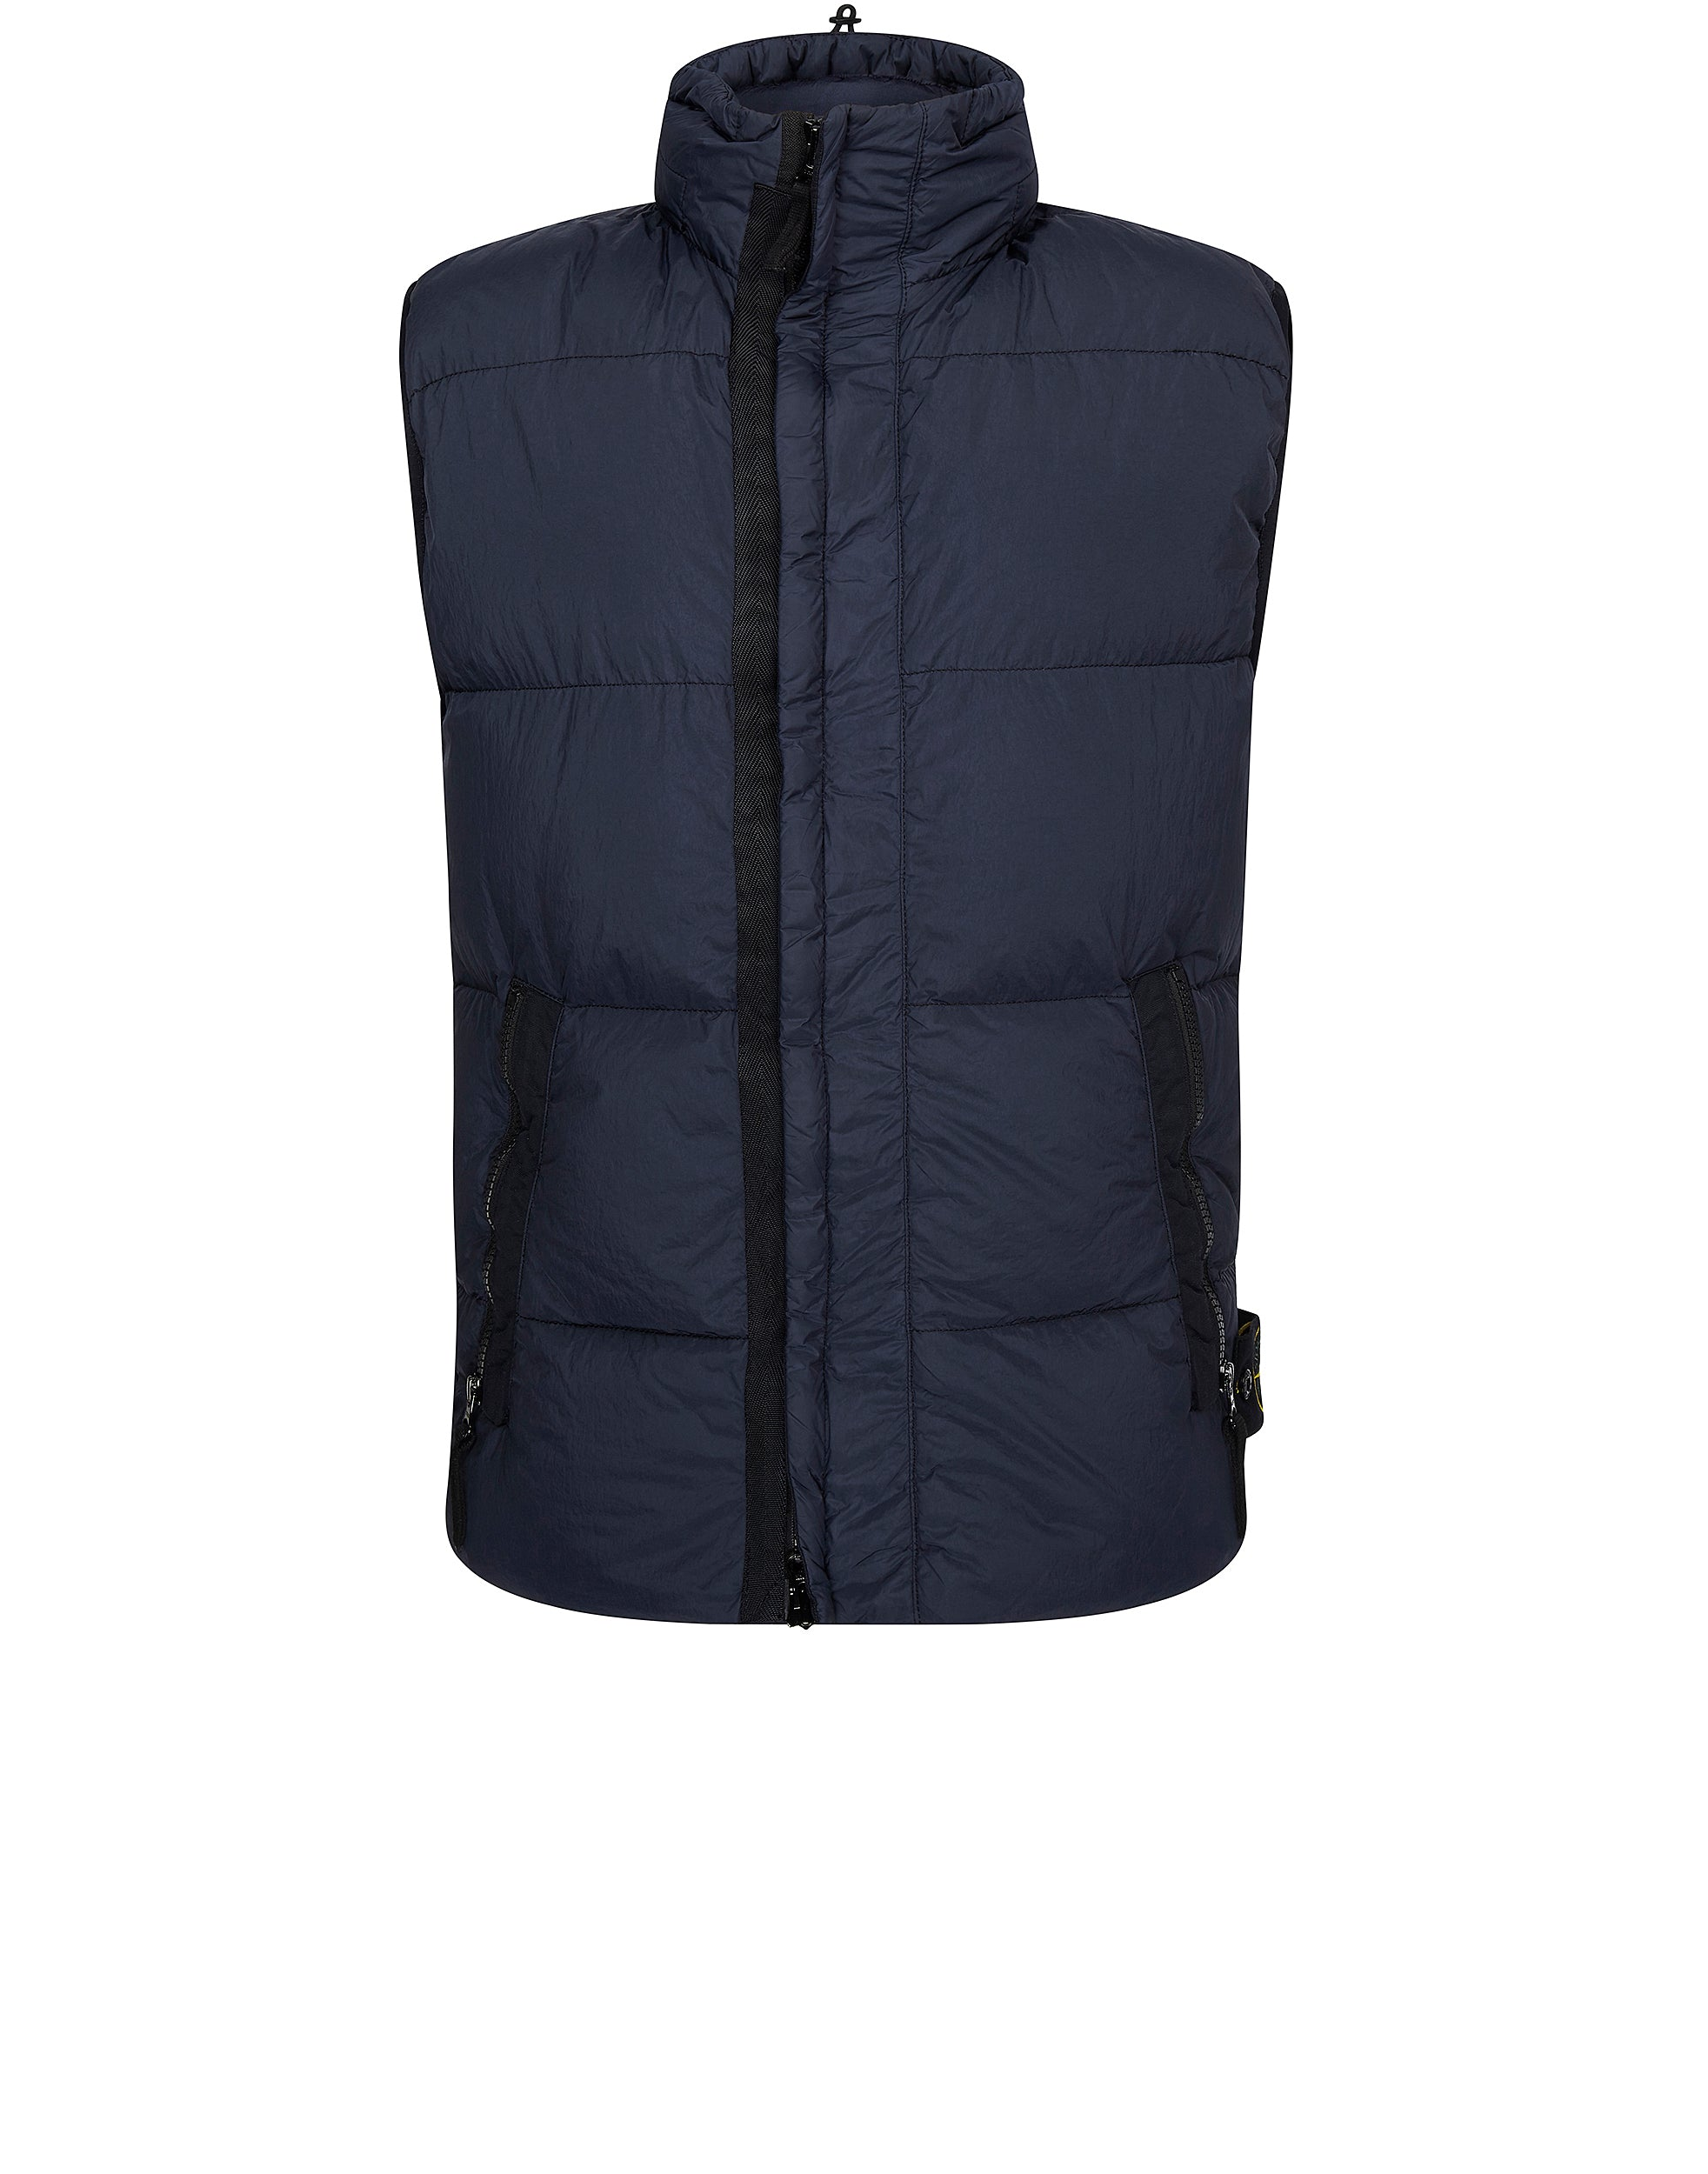 G0223 GARMENT DYED CRINKLE REPS NY DOWN Vest in Navy